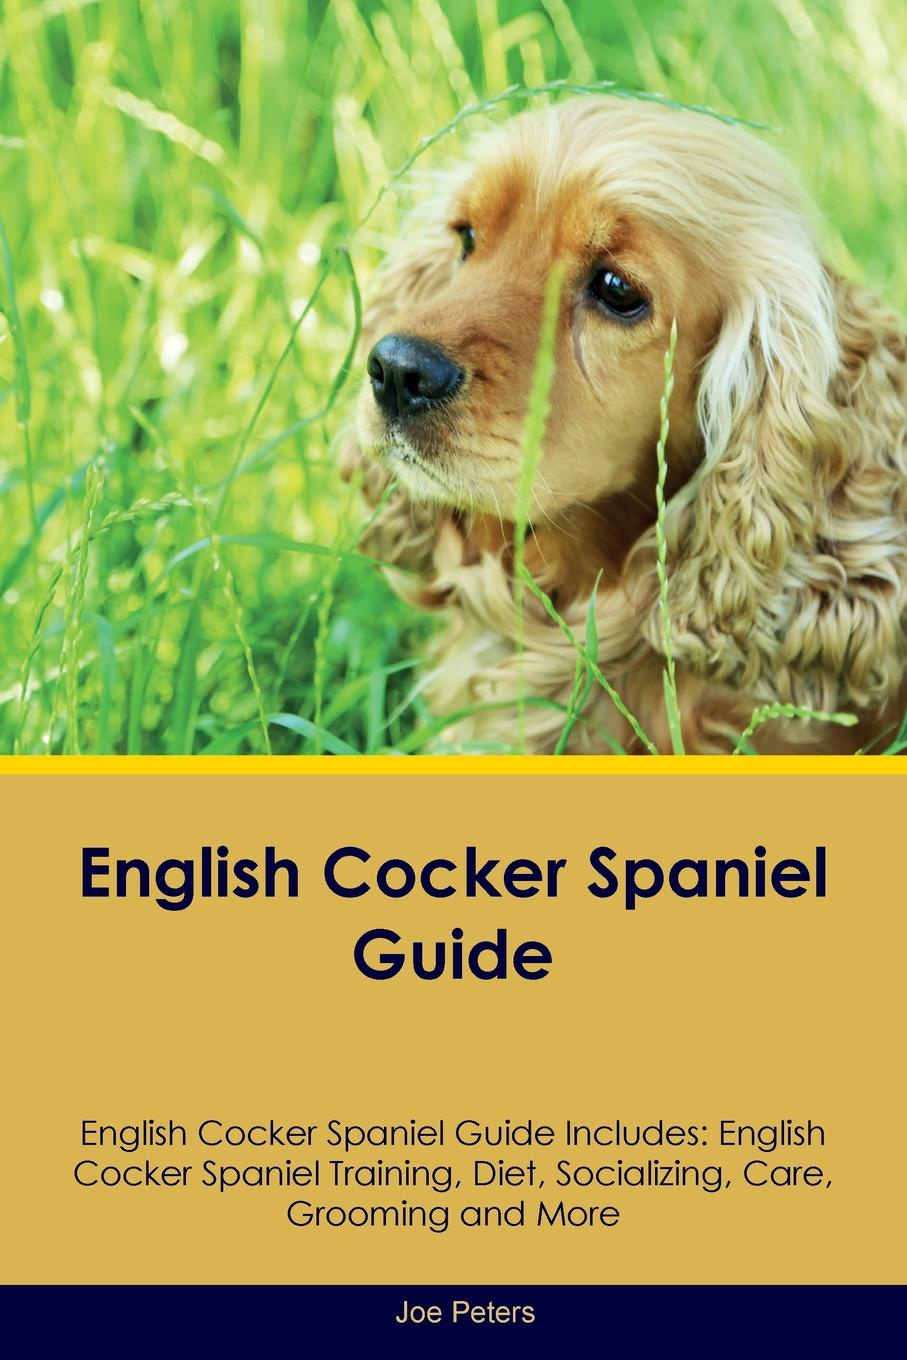 Joe Peters English Cocker Spaniel Guide English Cocker Spaniel Guide Includes. English Cocker Spaniel Training, Diet, Socializing, Care, Grooming, Breeding and More joe cocker joe cocker the life of a man the ultimate hits 1968 2013